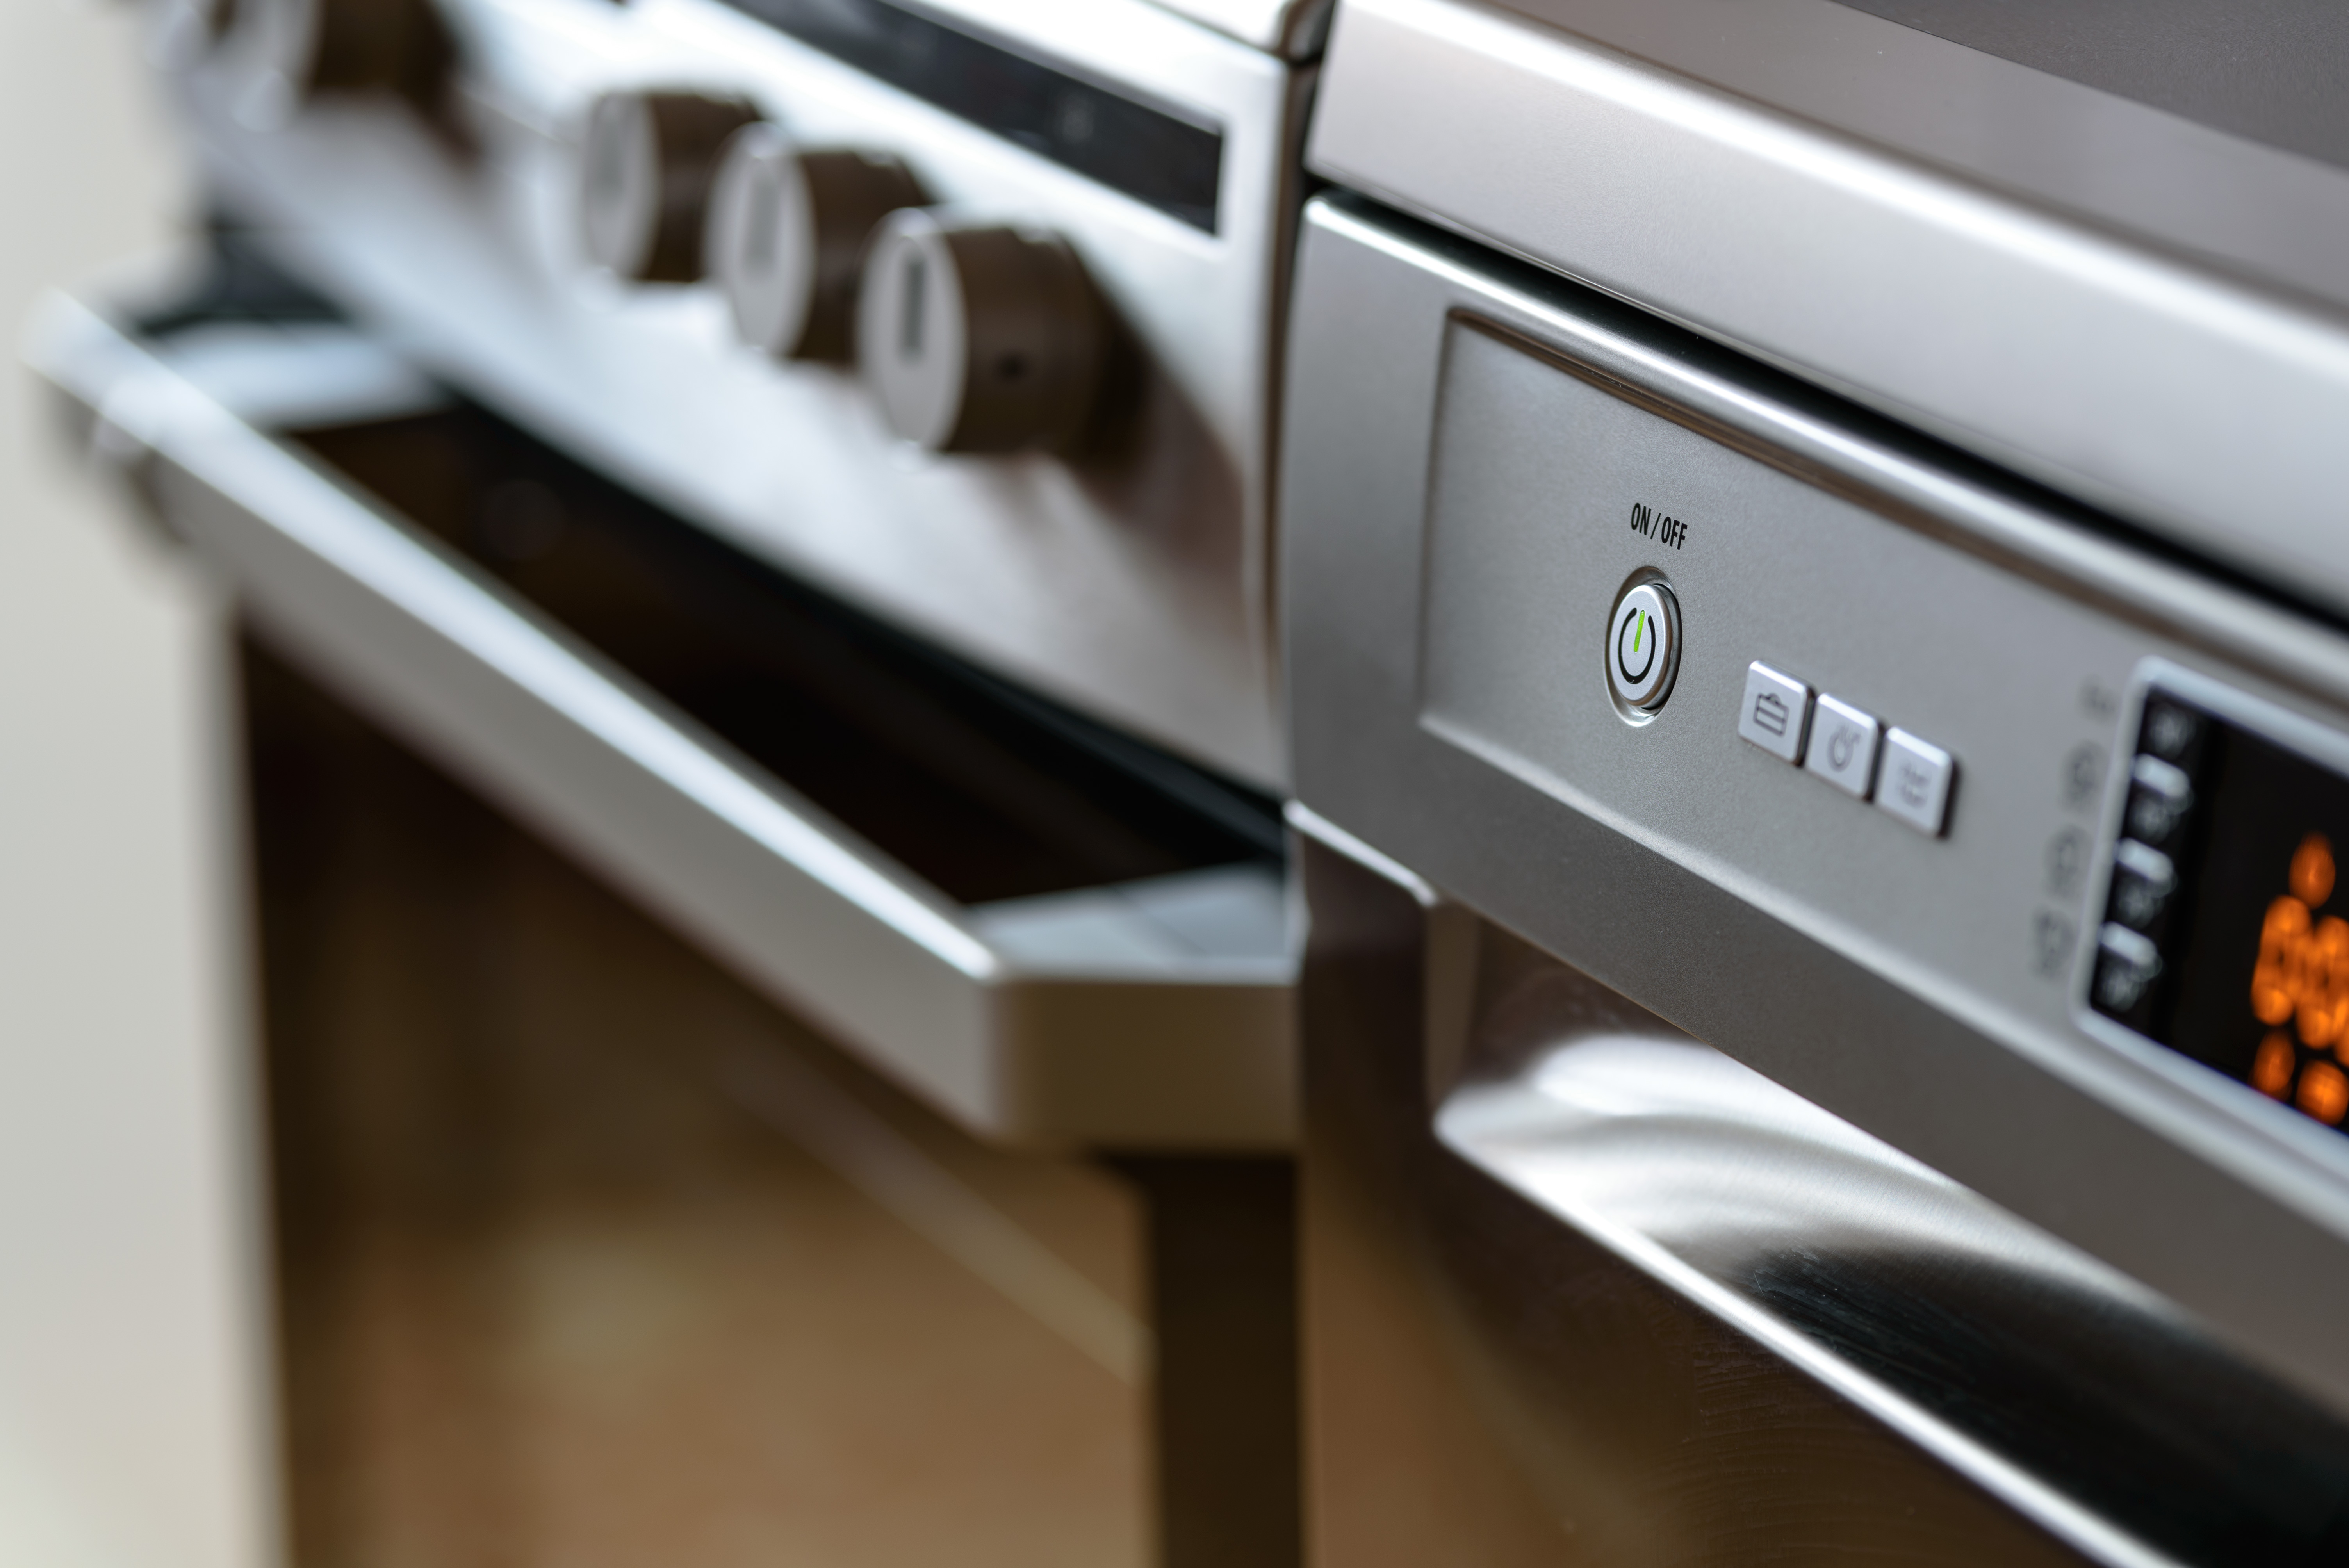 NEW * OVEN cleaning